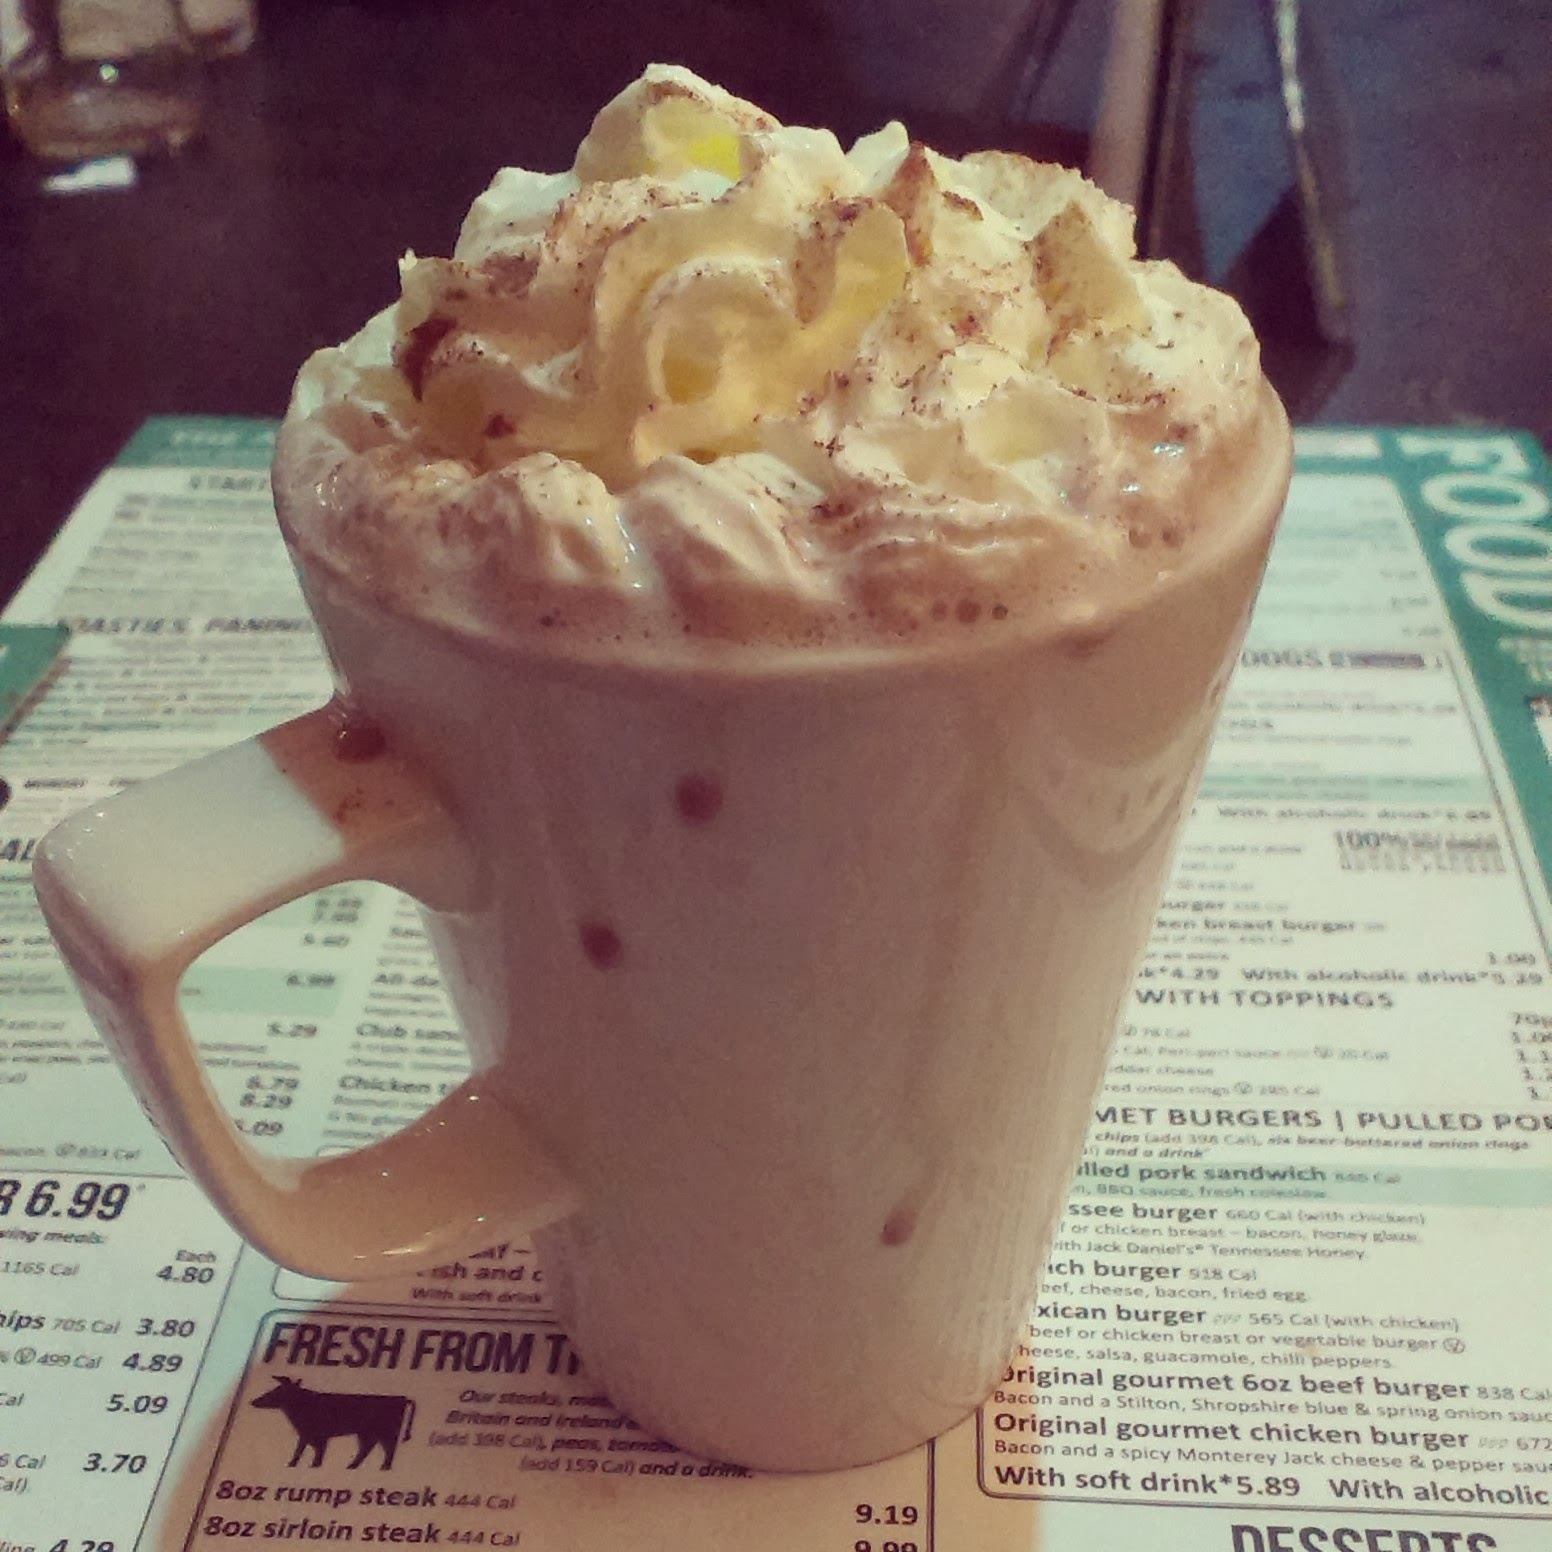 Wetherspoons Hot Chocolate